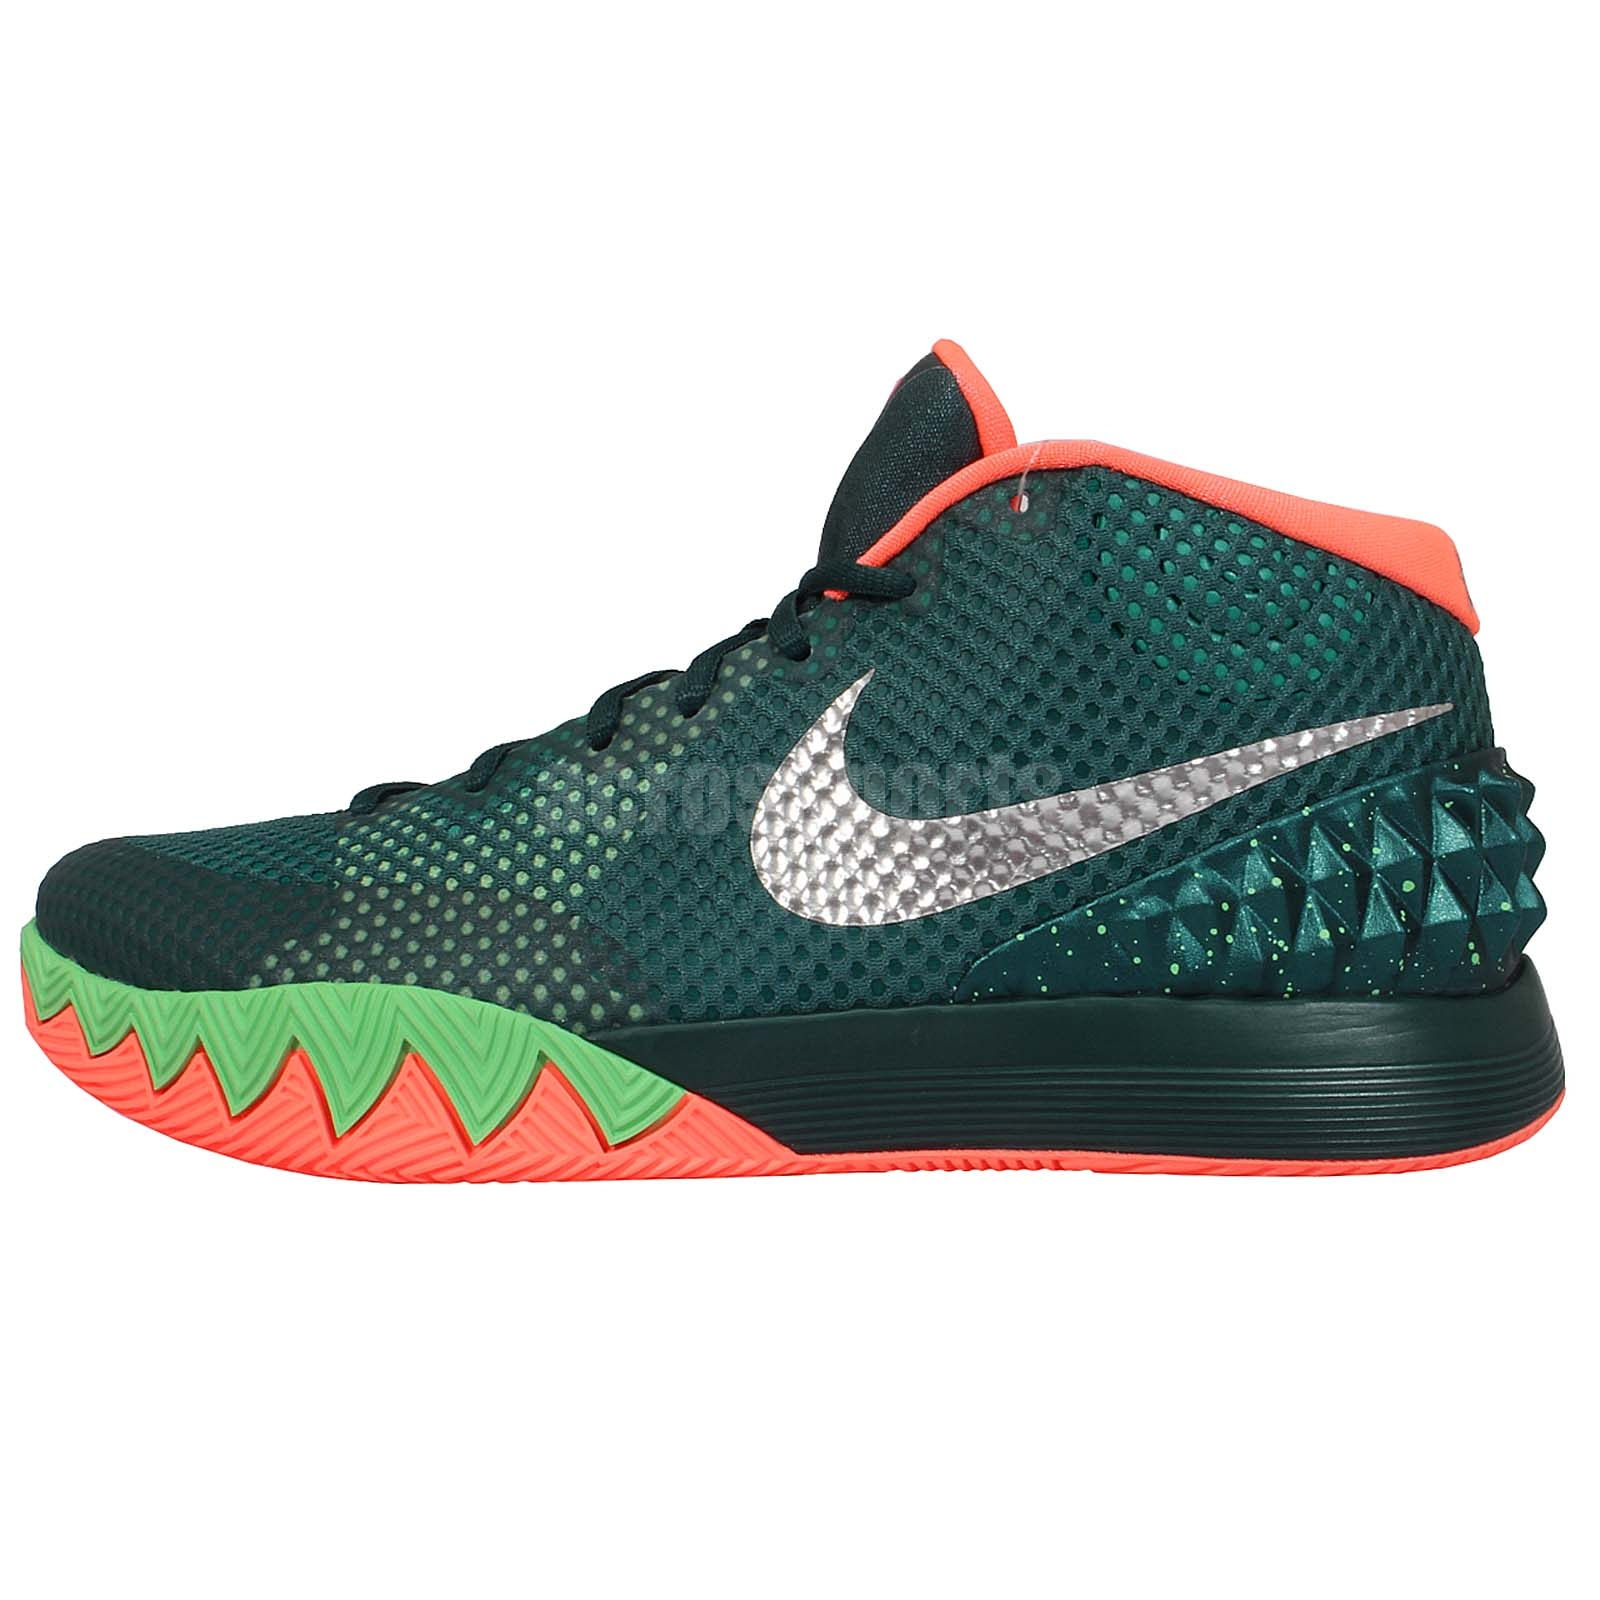 Kyrie Irving Shoes 2015 Nike Kyrie 1 EP Flytra...